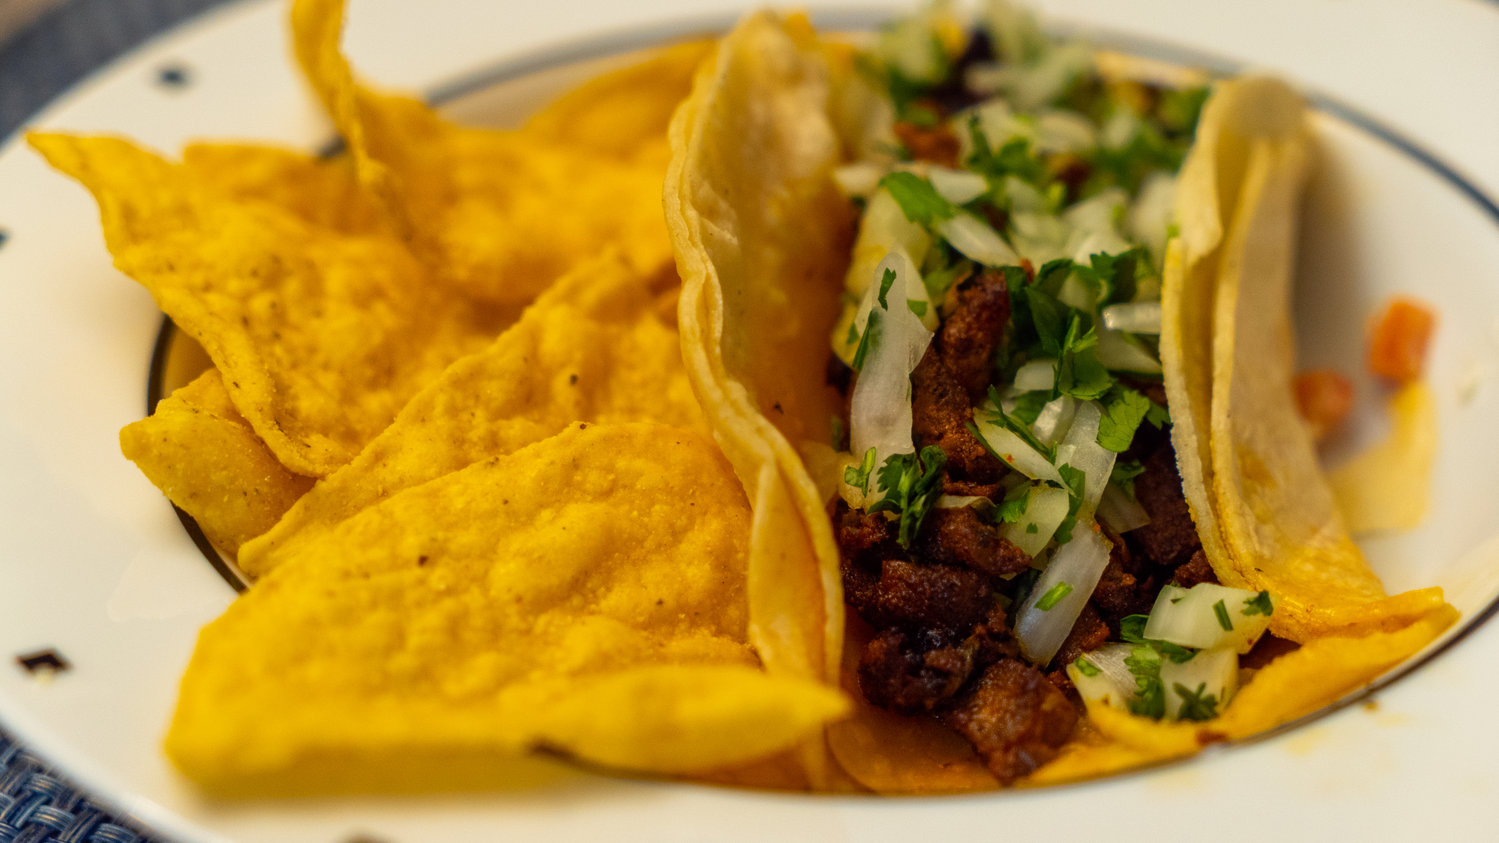 The restaurant offers traditional and authentic Mexican tacos and other dishes.